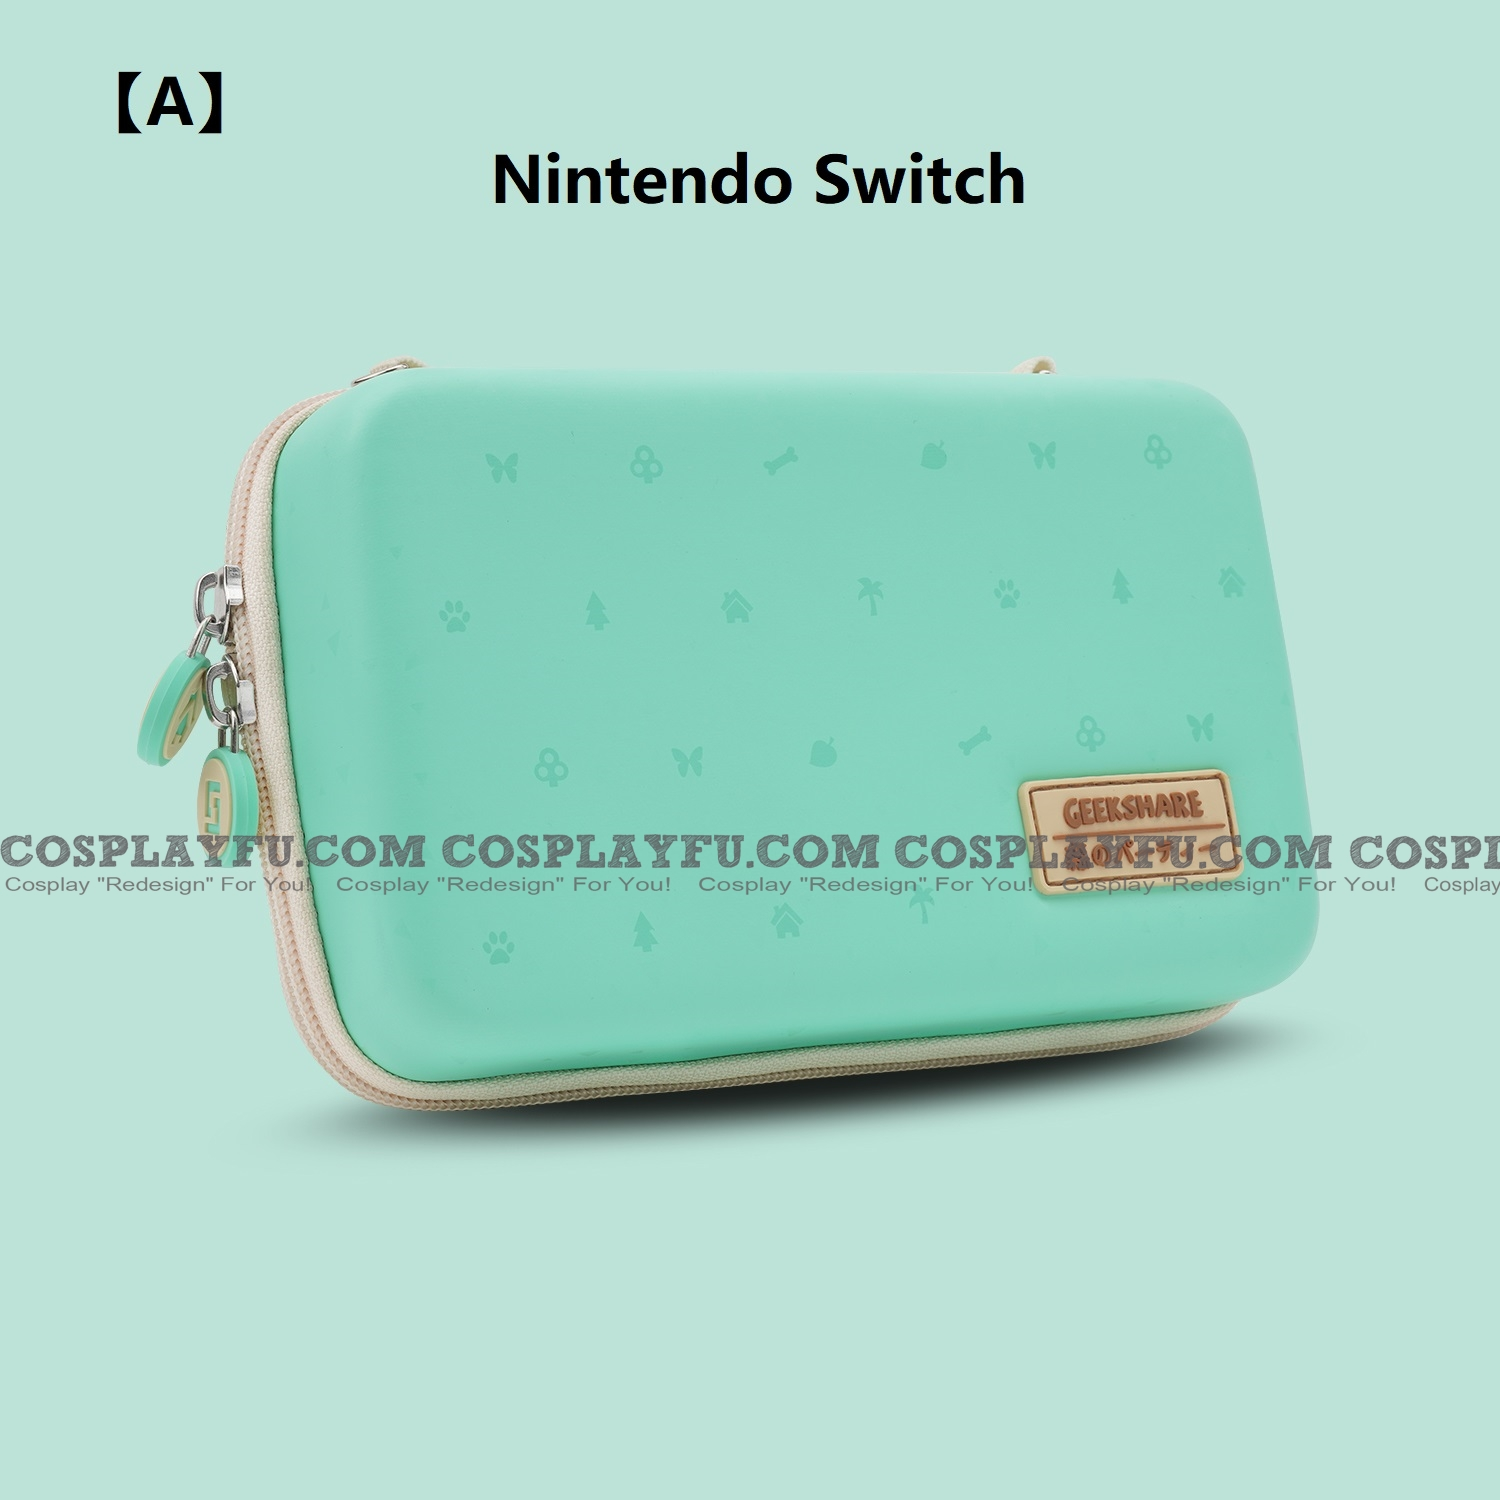 Green Animal Crossing Party Nintendo Switch and Switch Lite Carrying Case - 8~12 Game Cards Holding